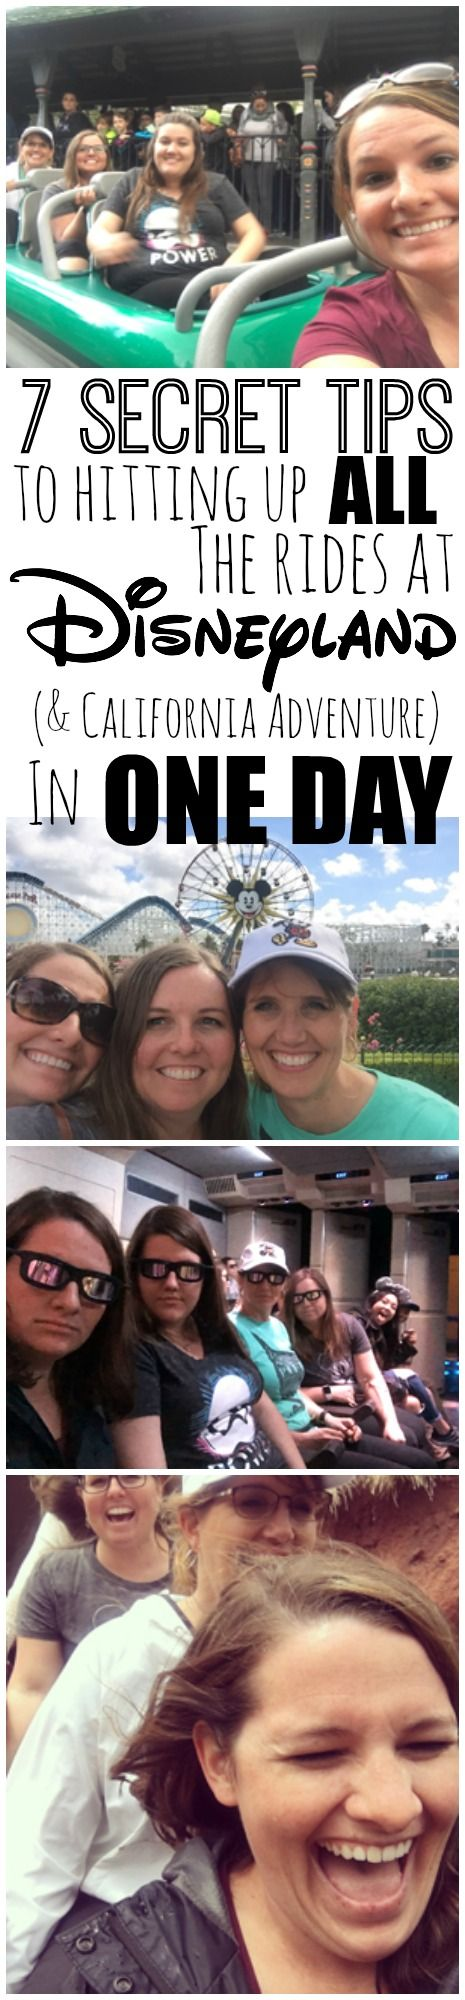 "This isn't your typical ""Disneyland Tips"" post-- we are diving deeper and letting you in on the secrets to hitting up all the rides in both parks in ONE DAY"